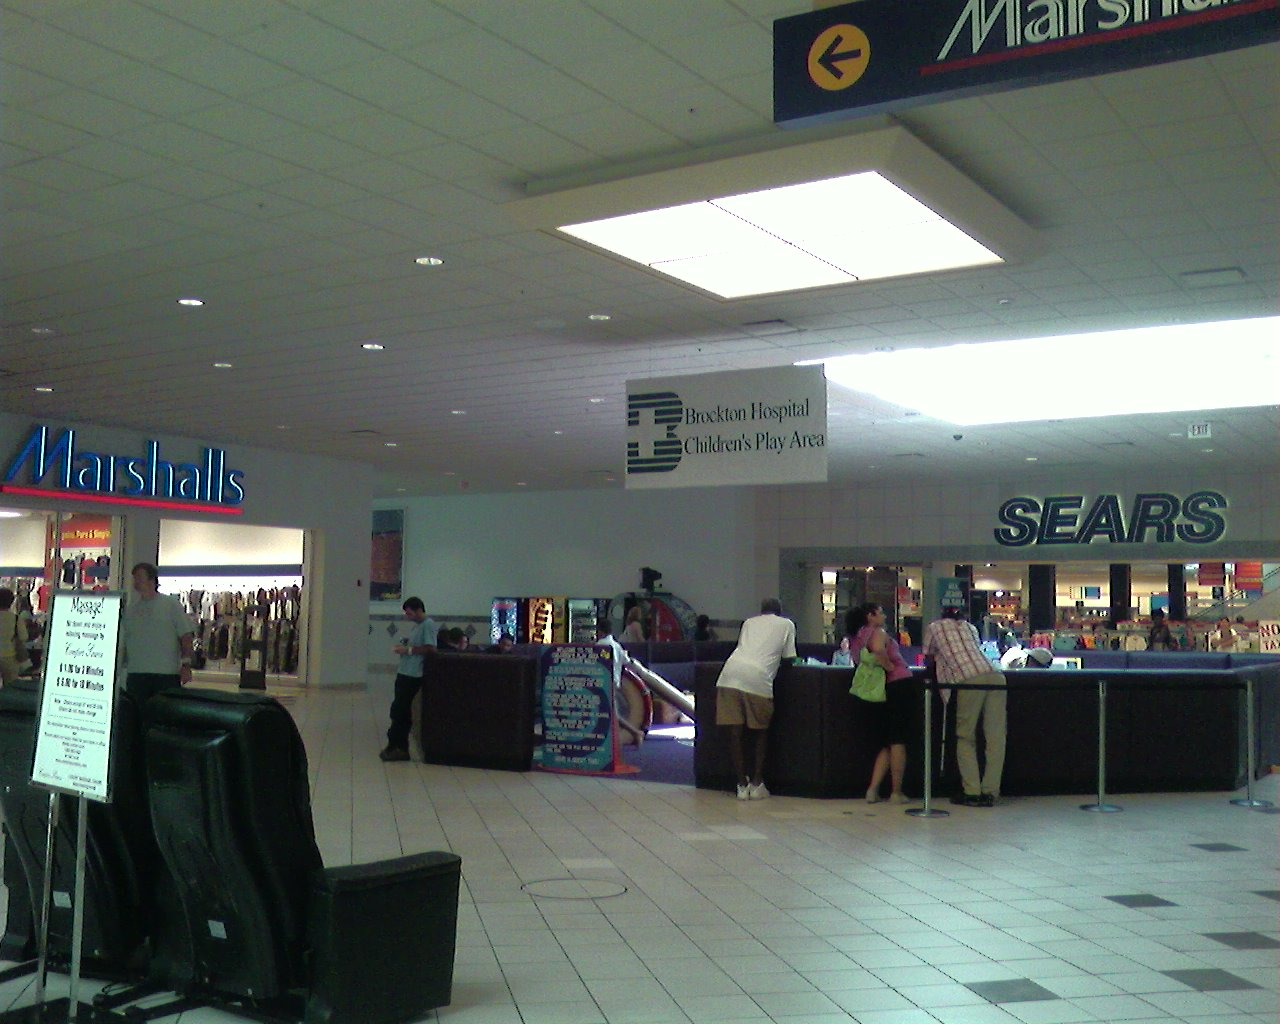 Mall directory for the home to your favorite restaurants, like H&M, Pandora, Hollister, Bath & Body Works, Victoria's Secret, Cheddar's, Bahama Breeze, & More!